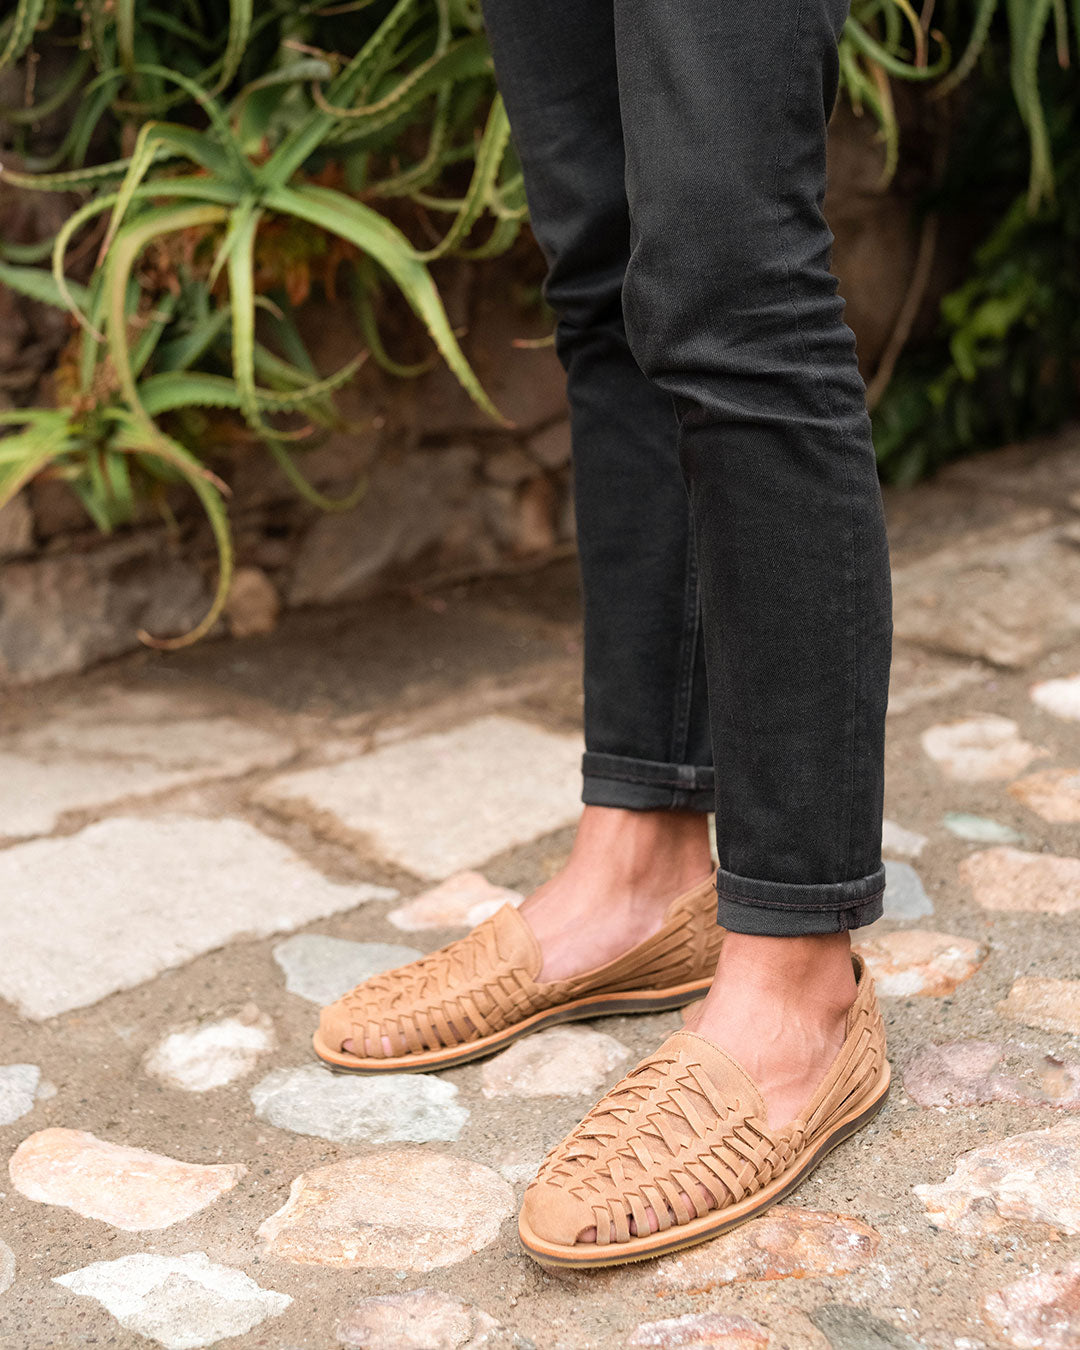 Men's Huarache Sandal | Handcrafted & Ethically Made | Nisolo